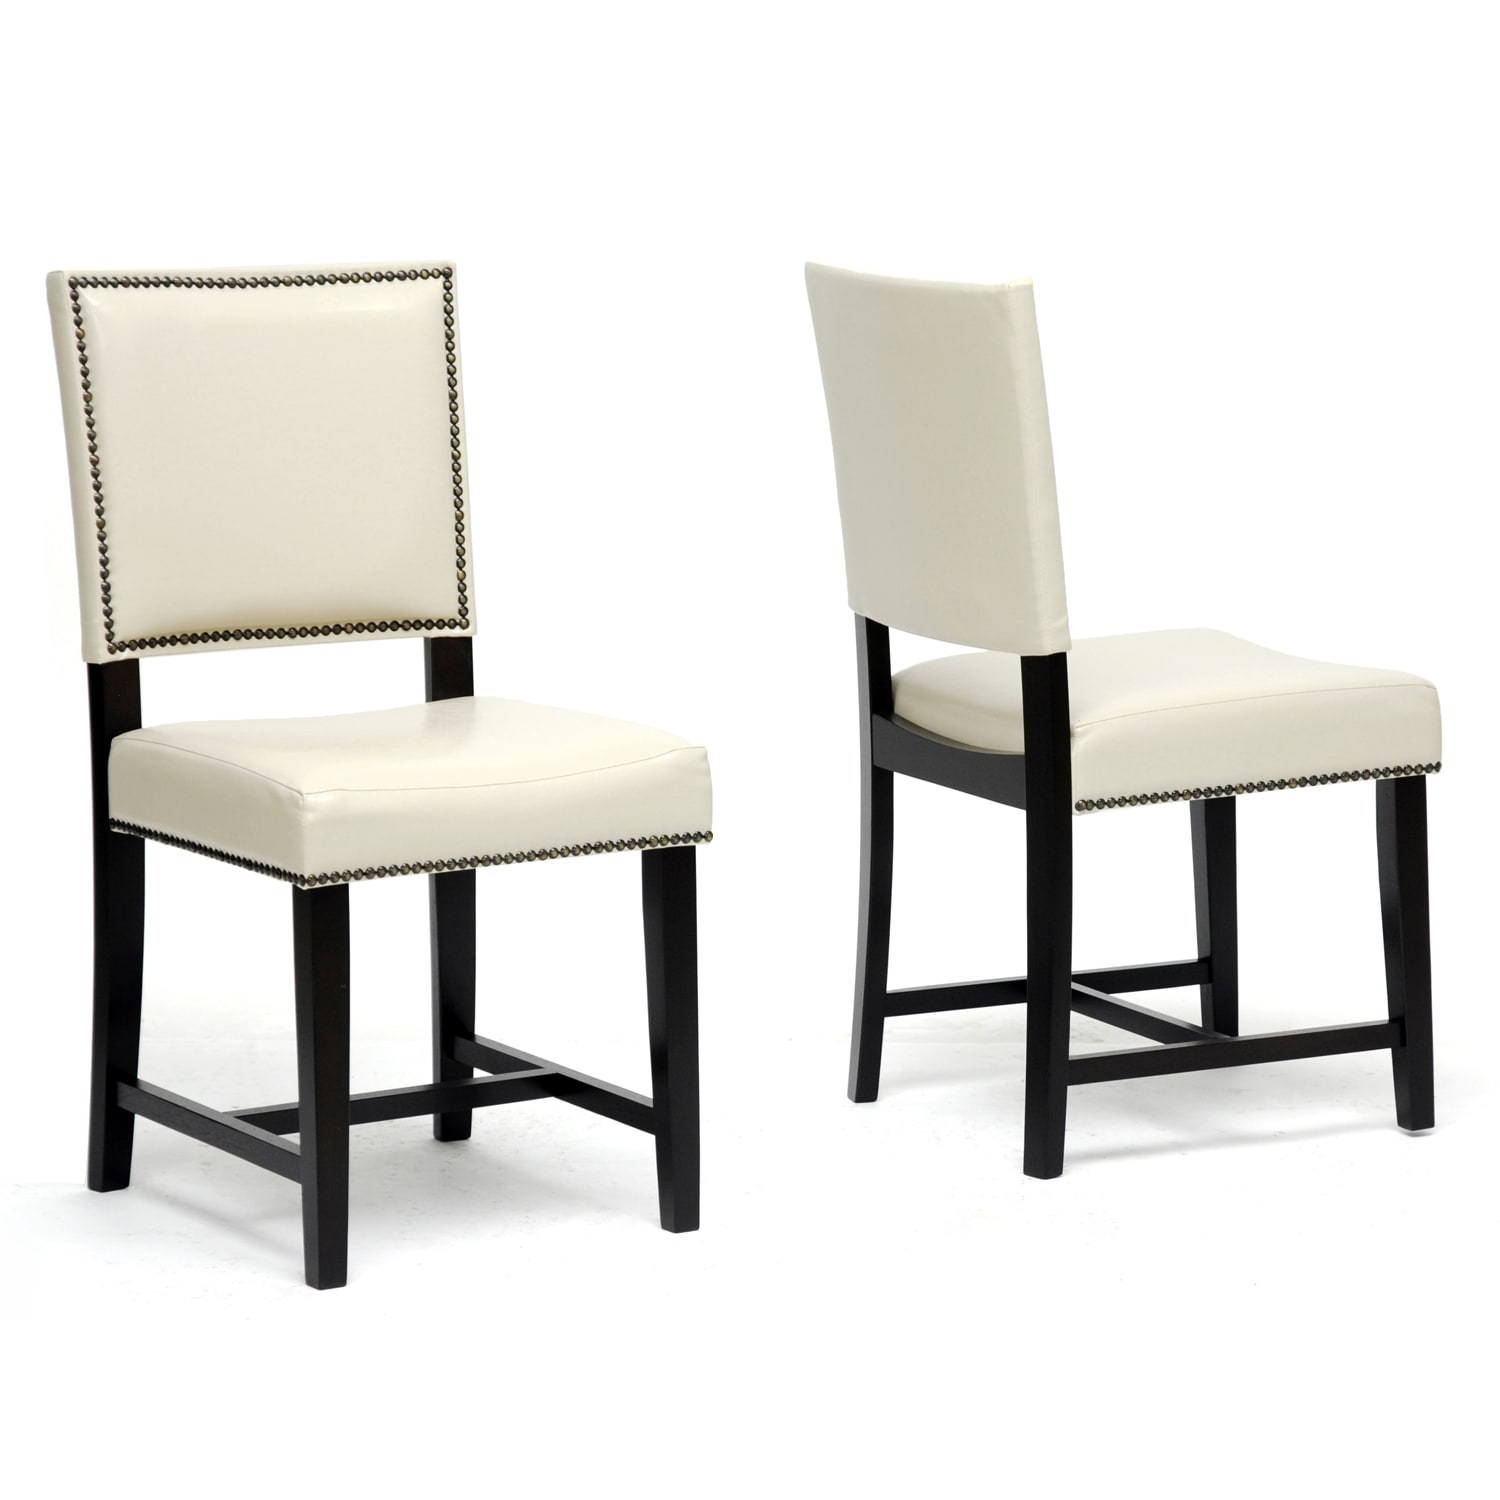 Baxton studio dining chairs overstock shopping the for Dining room sofa seating